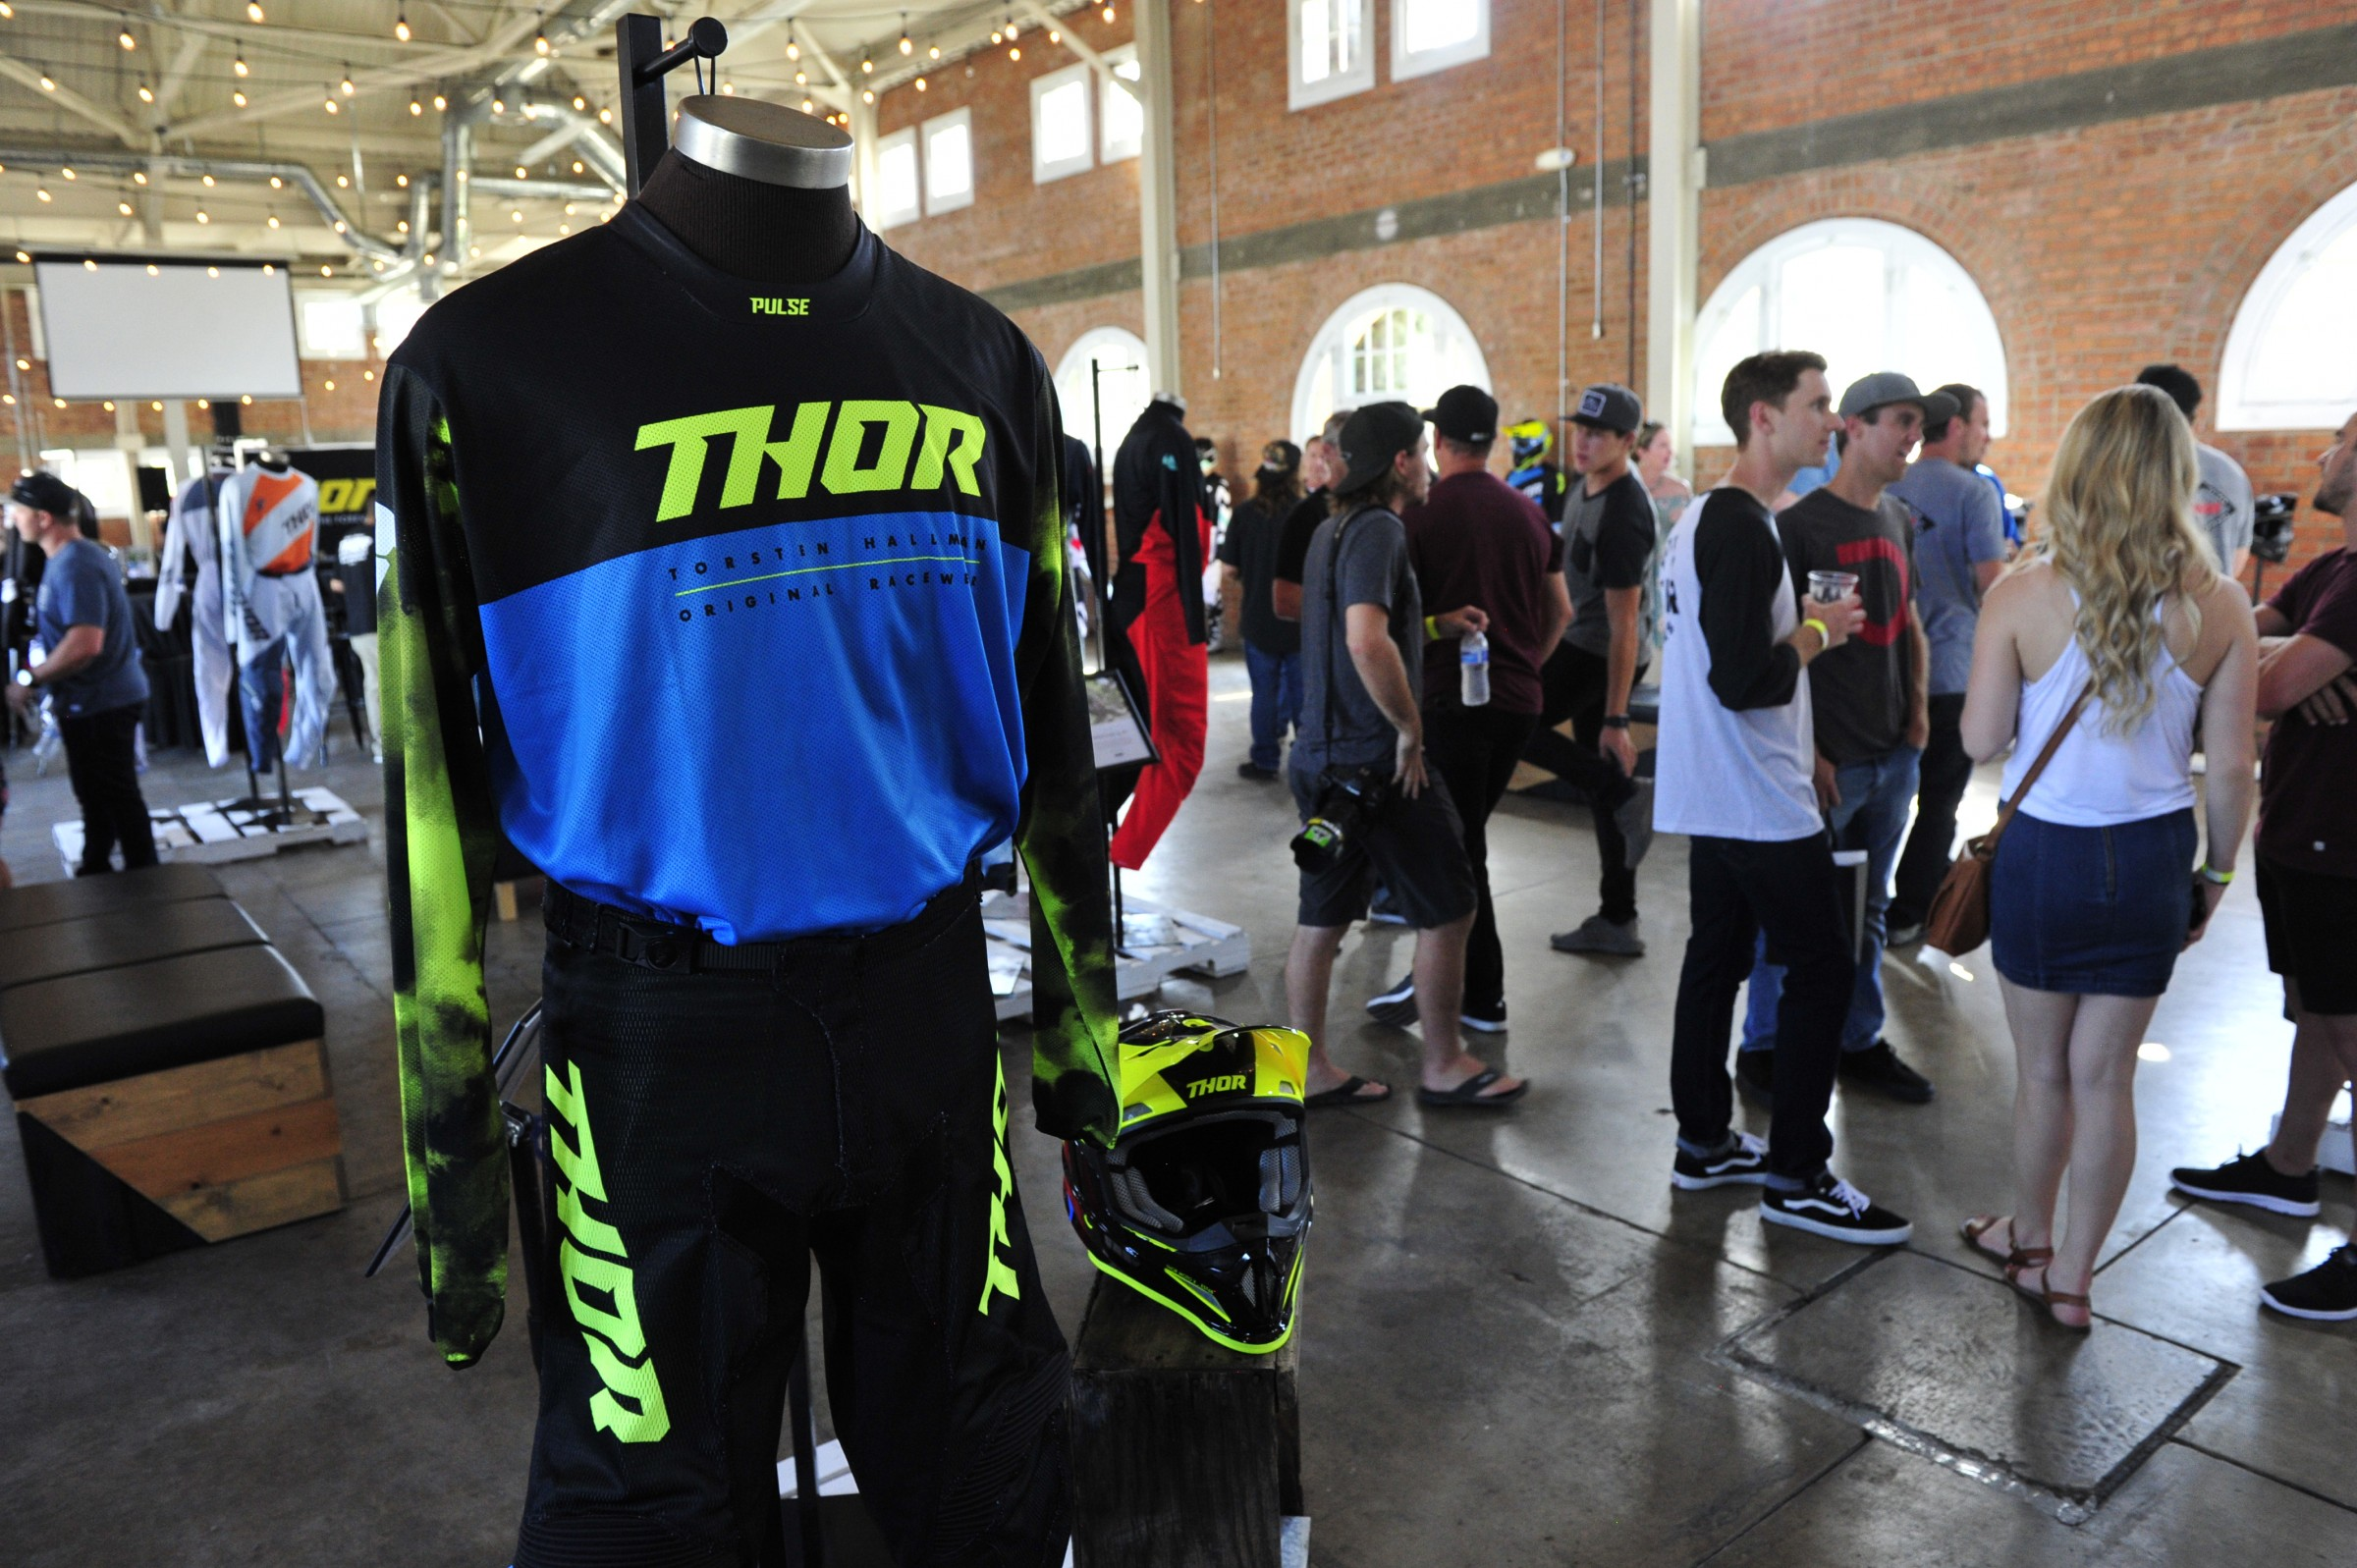 THOR_collection_COX6636